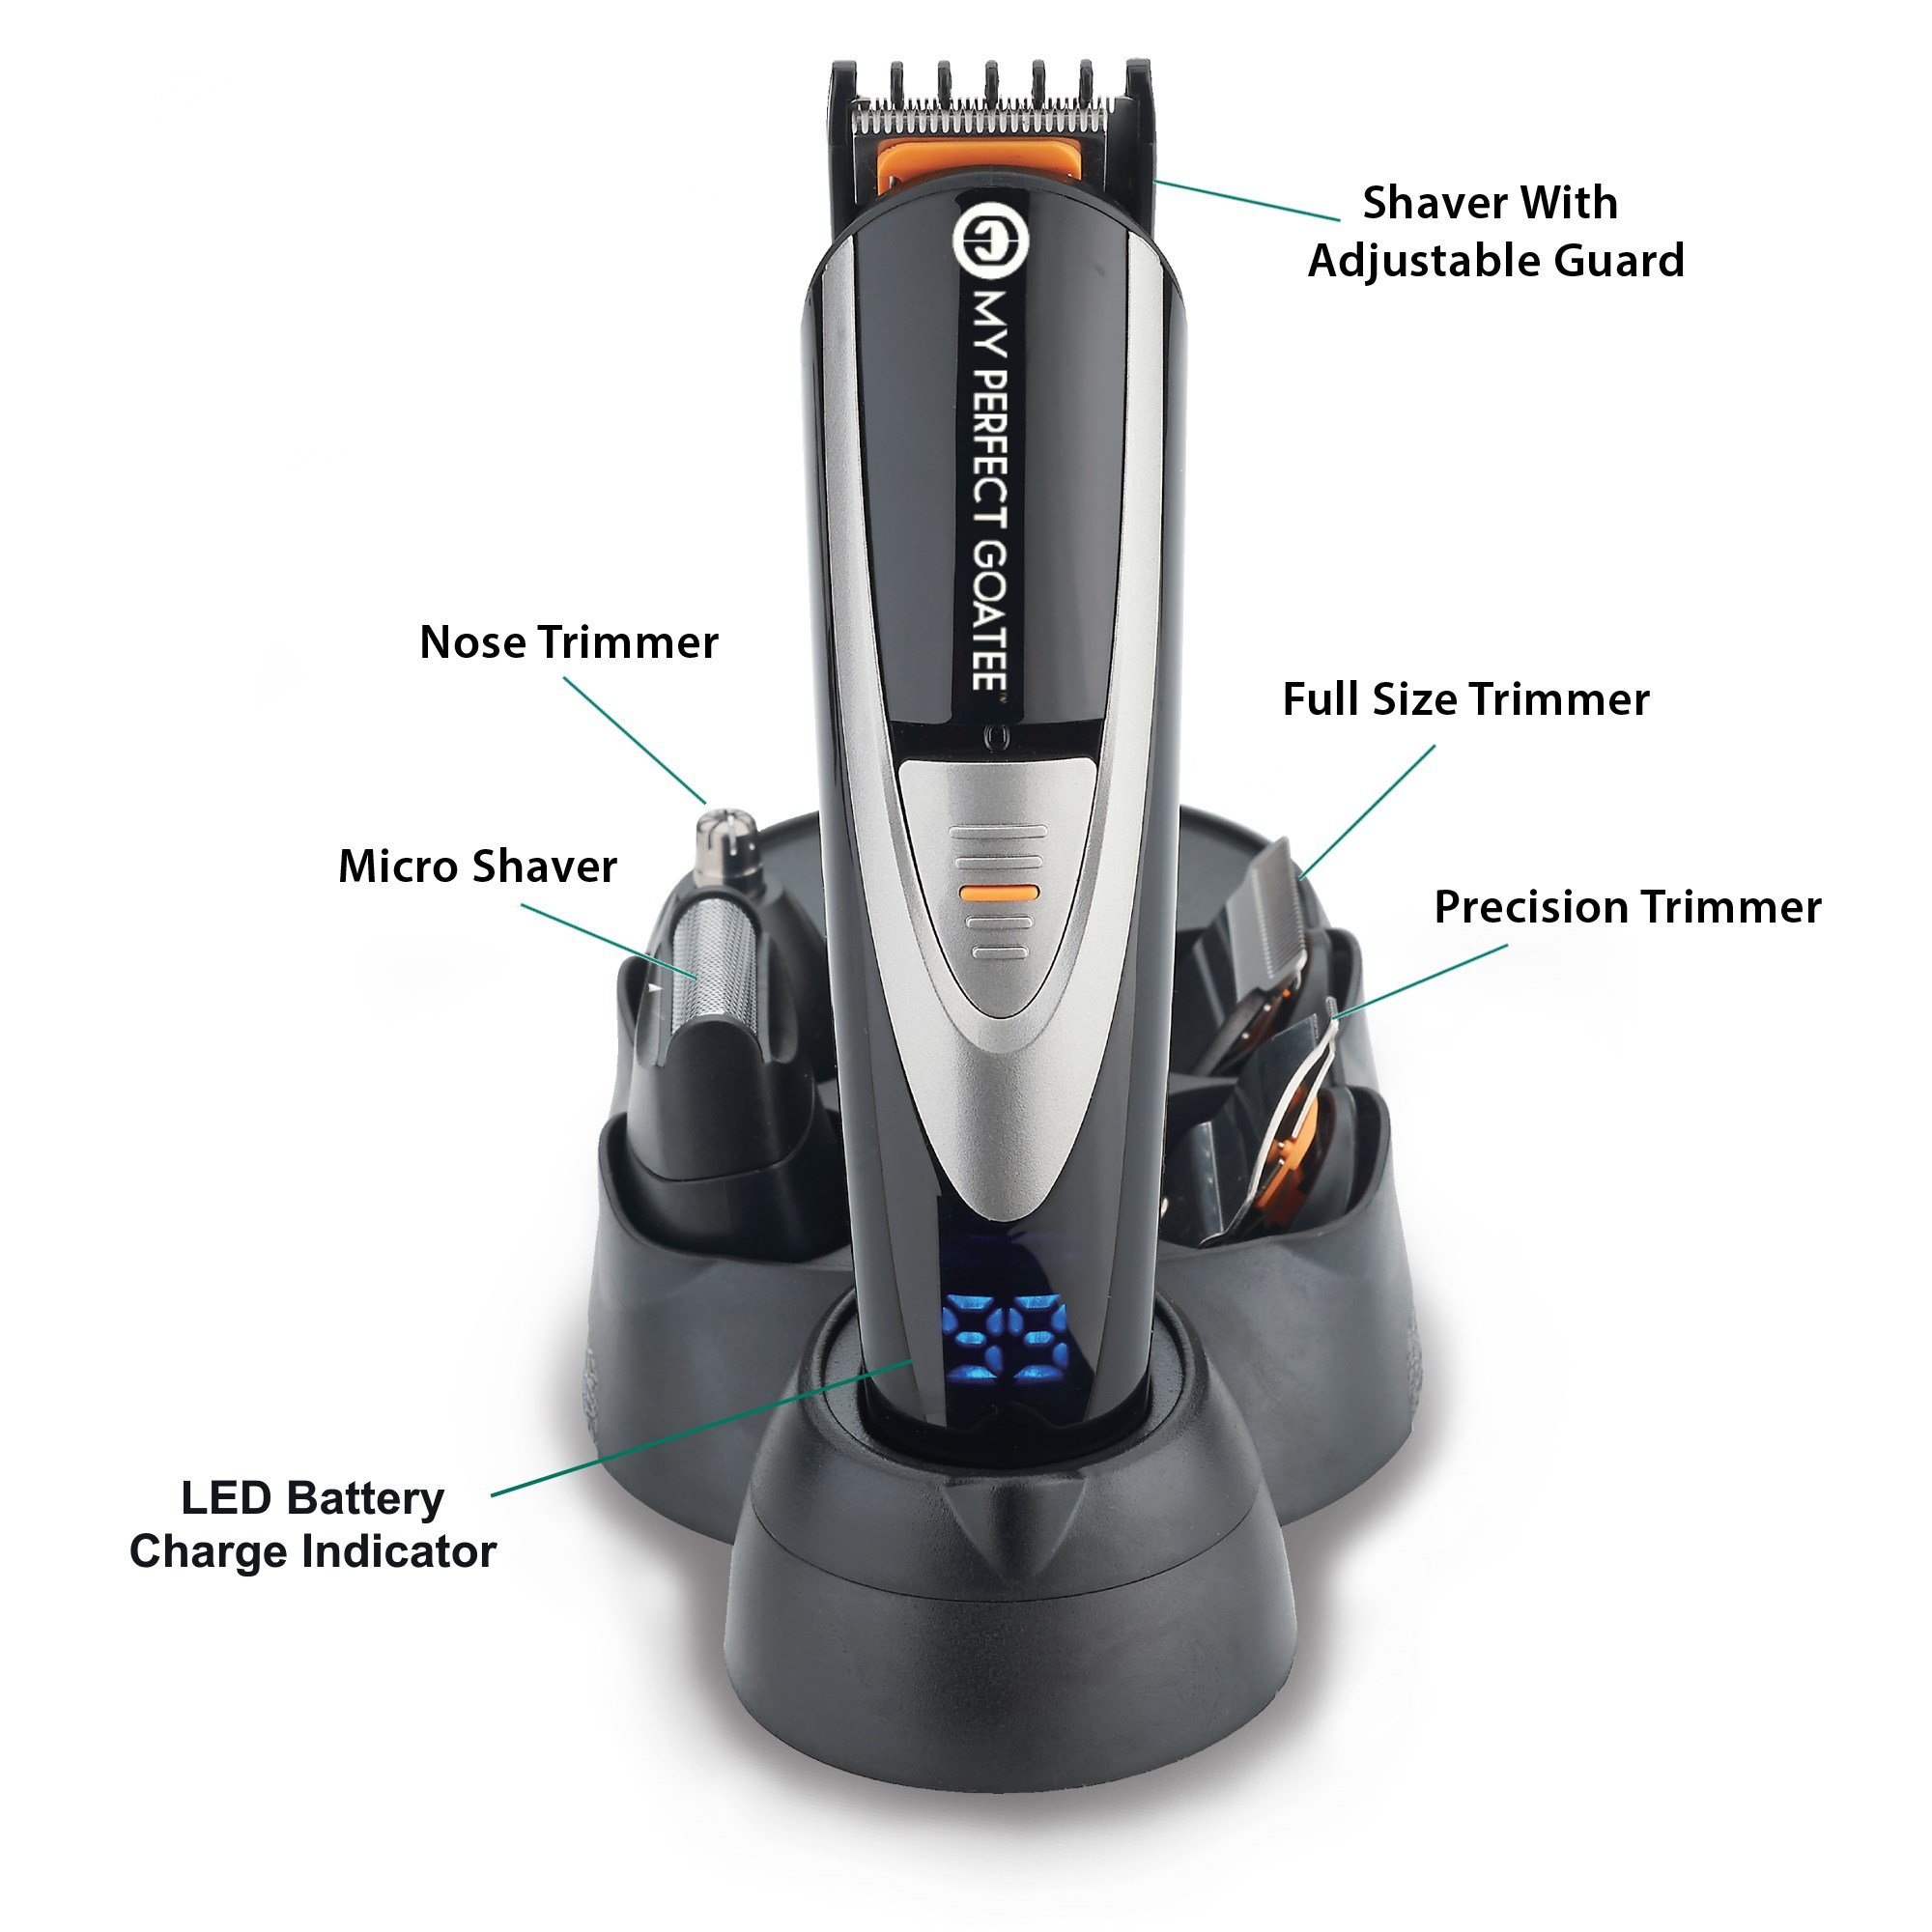 My Perfect Goatee Beard Trimmer, LED Battery Charge Indicator, 10 in 1 Men's Grooming Kit and Travel Bag, MPG 800W